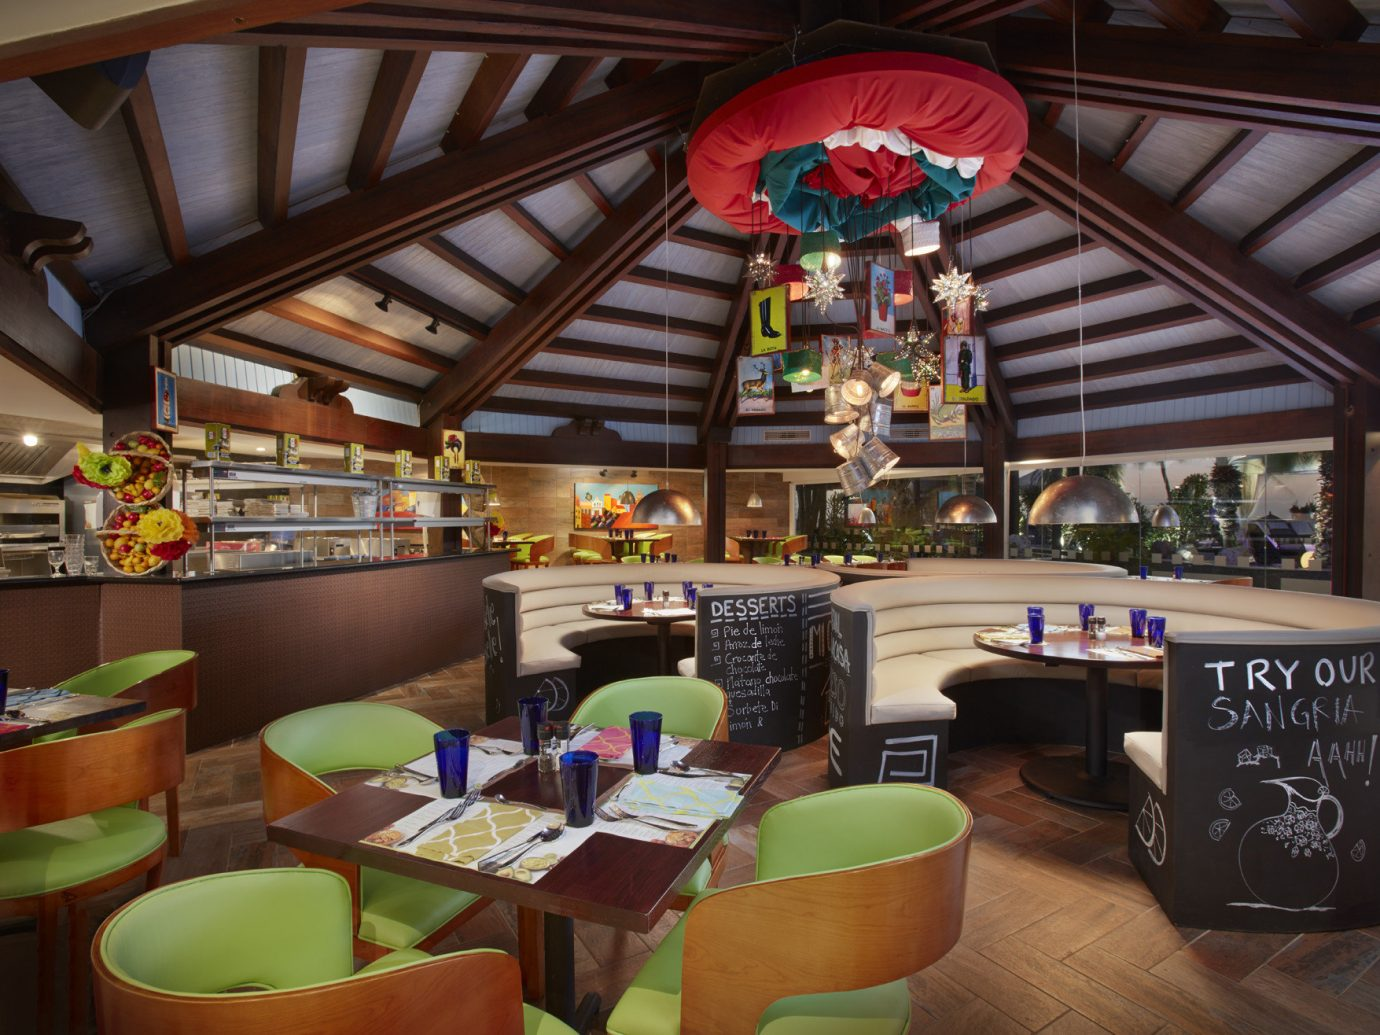 Hotels Romance indoor ceiling interior design restaurant meal